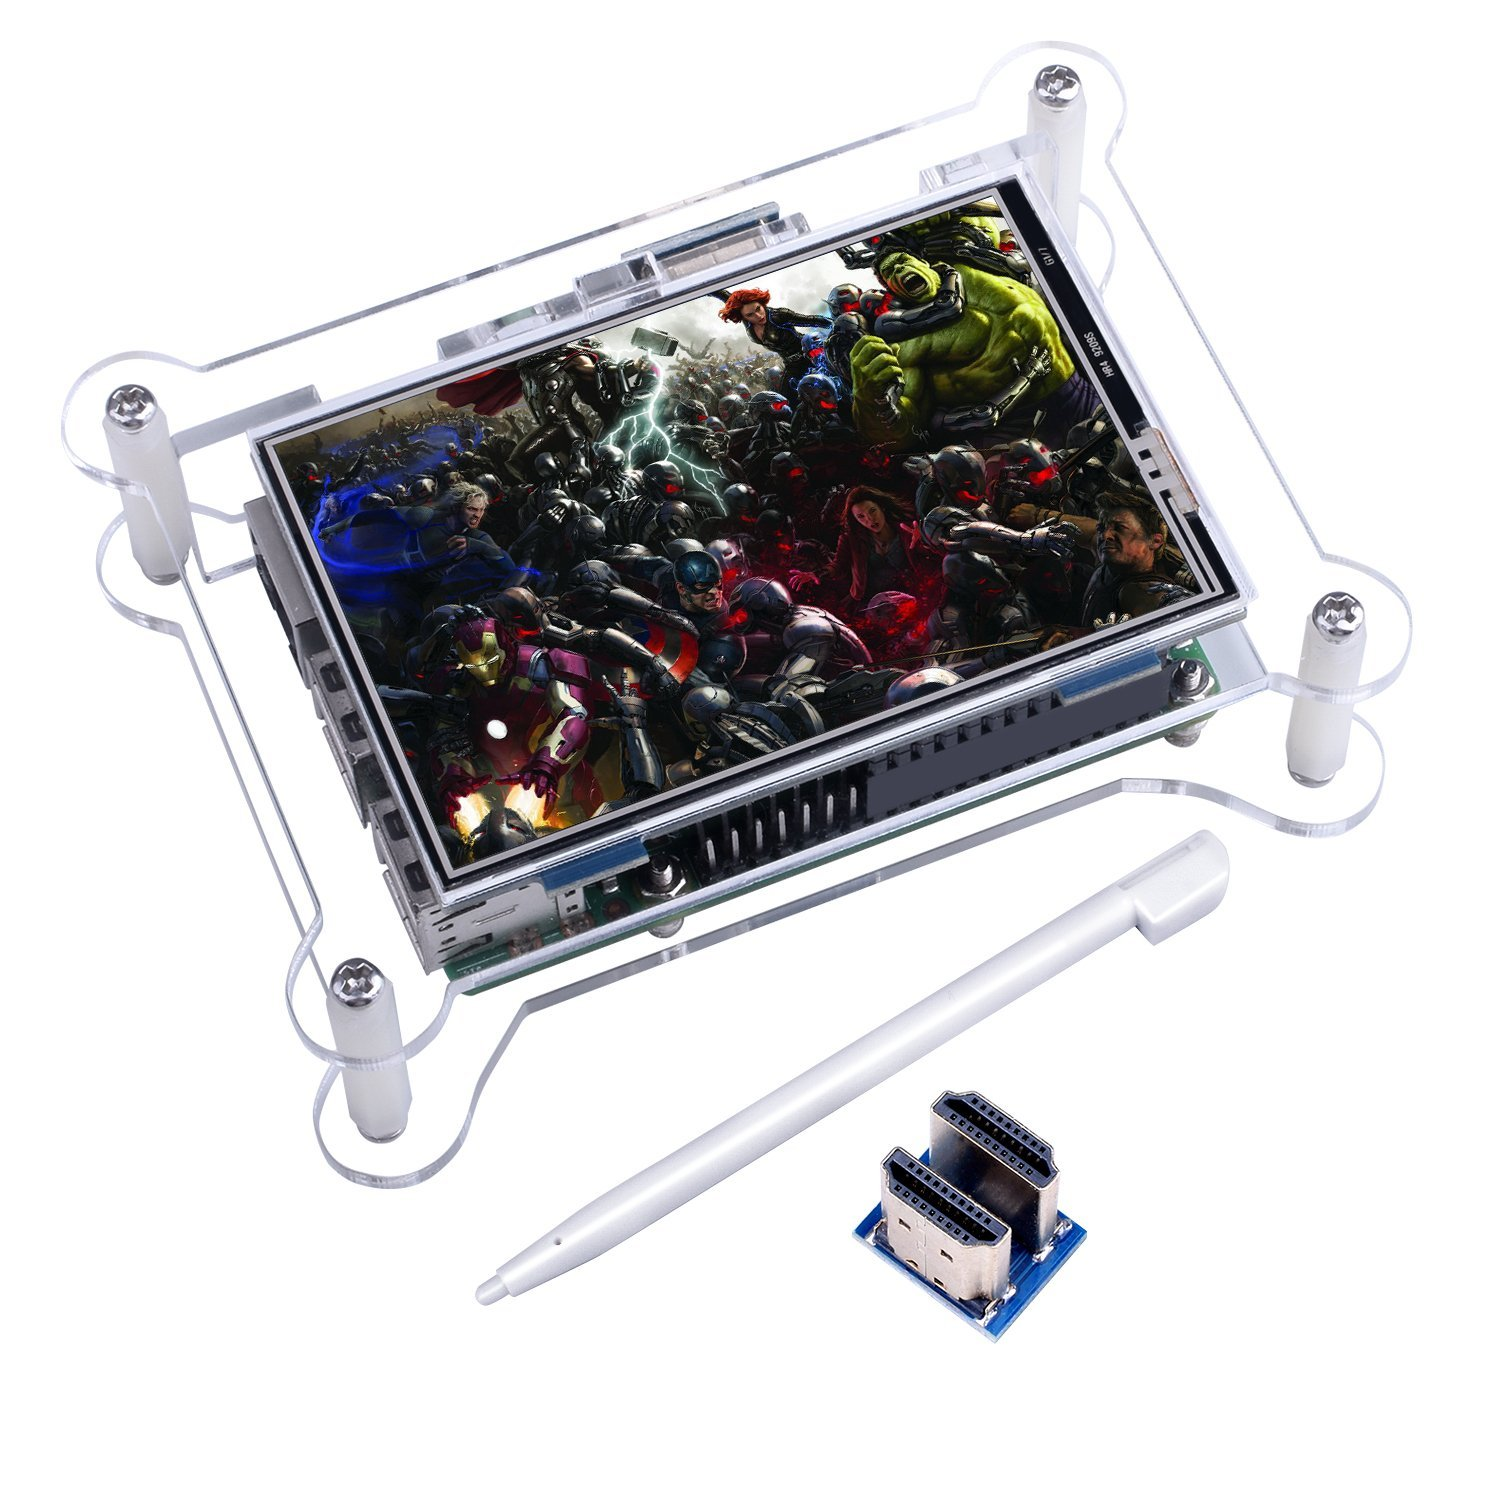 TFT Touch Screen, Kuman 3.5 Inch TFT LCD Display Monitor with Protective Case Support all Raspberry PI System, Video Movie Play, Arcade Game, HDMI Audio Input